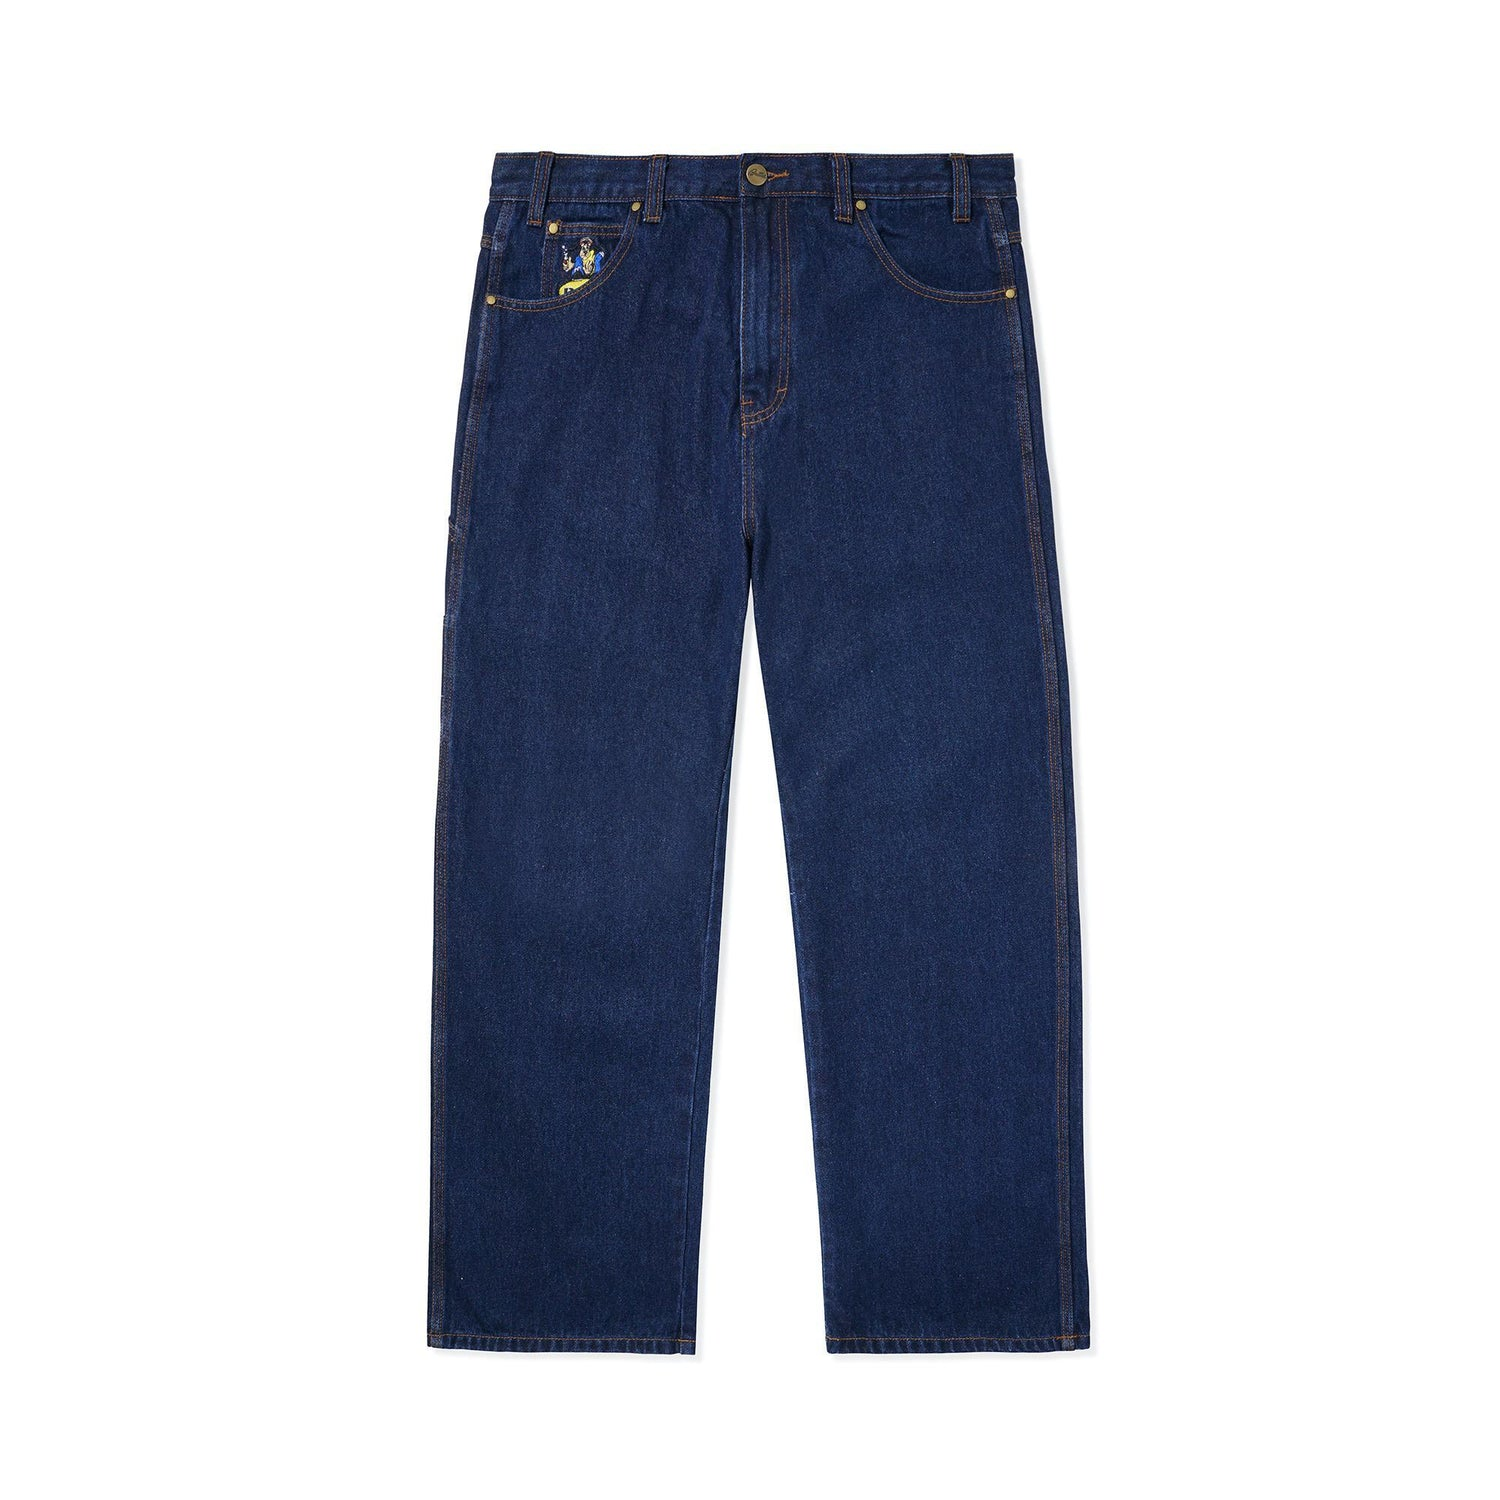 Homeboy Denim Pants, Indigo